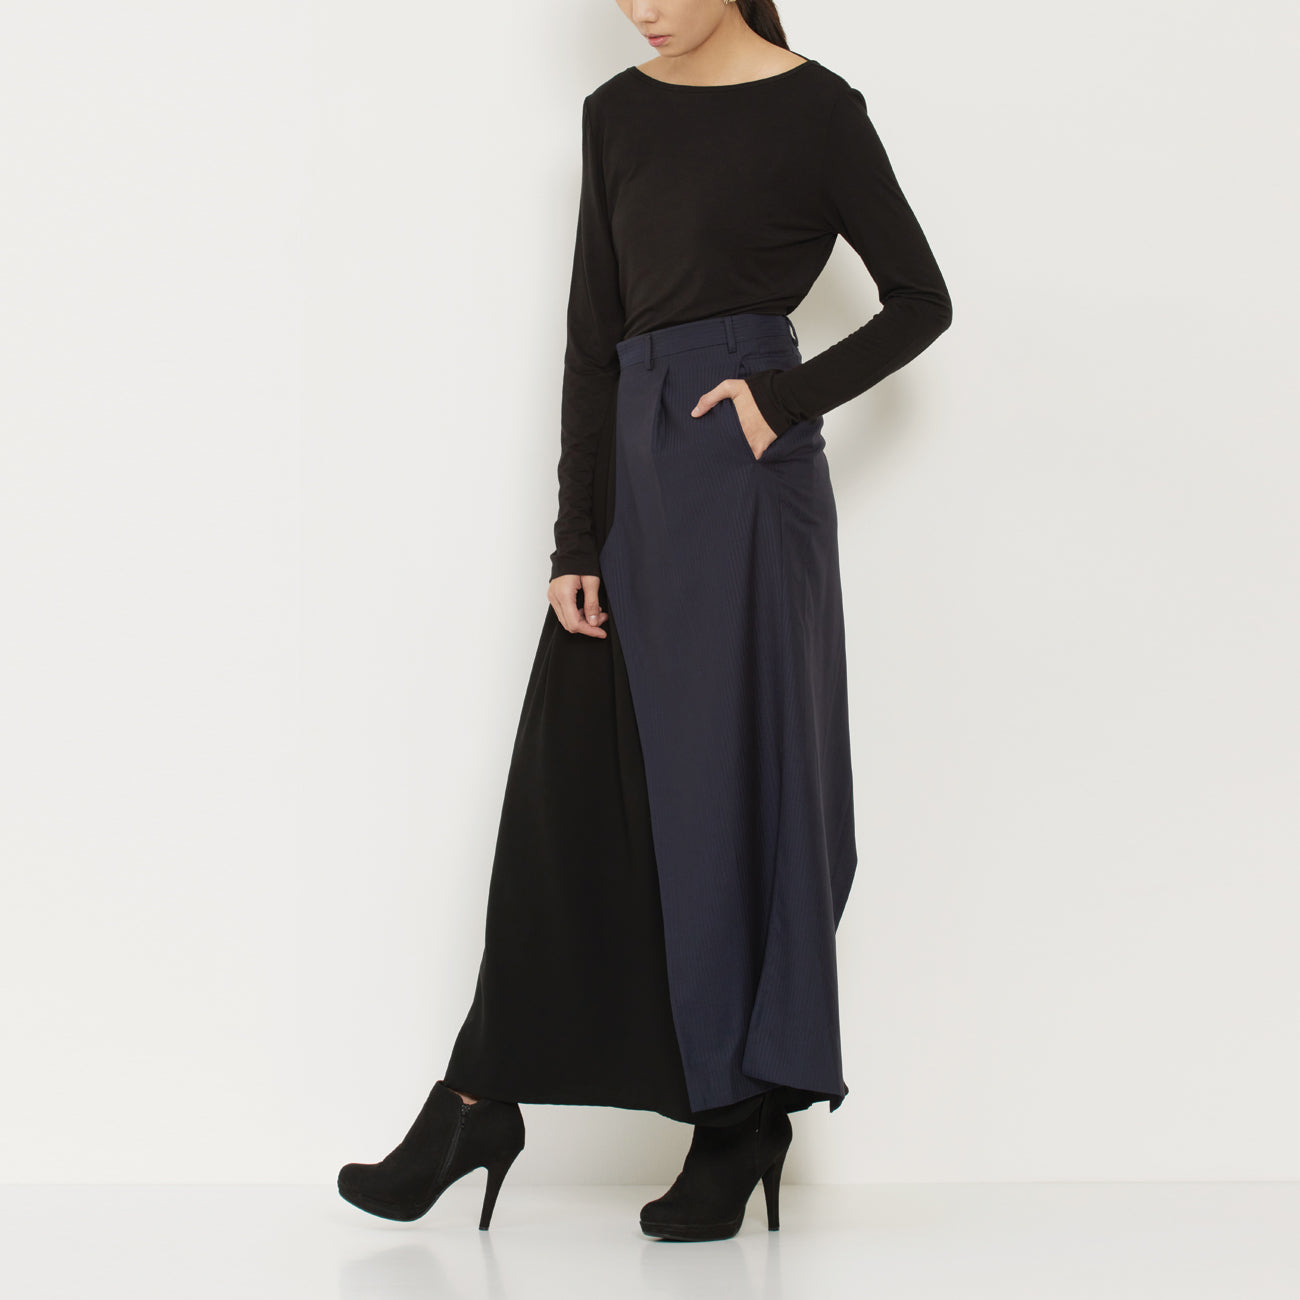 Refashion Contrast Long Skirt